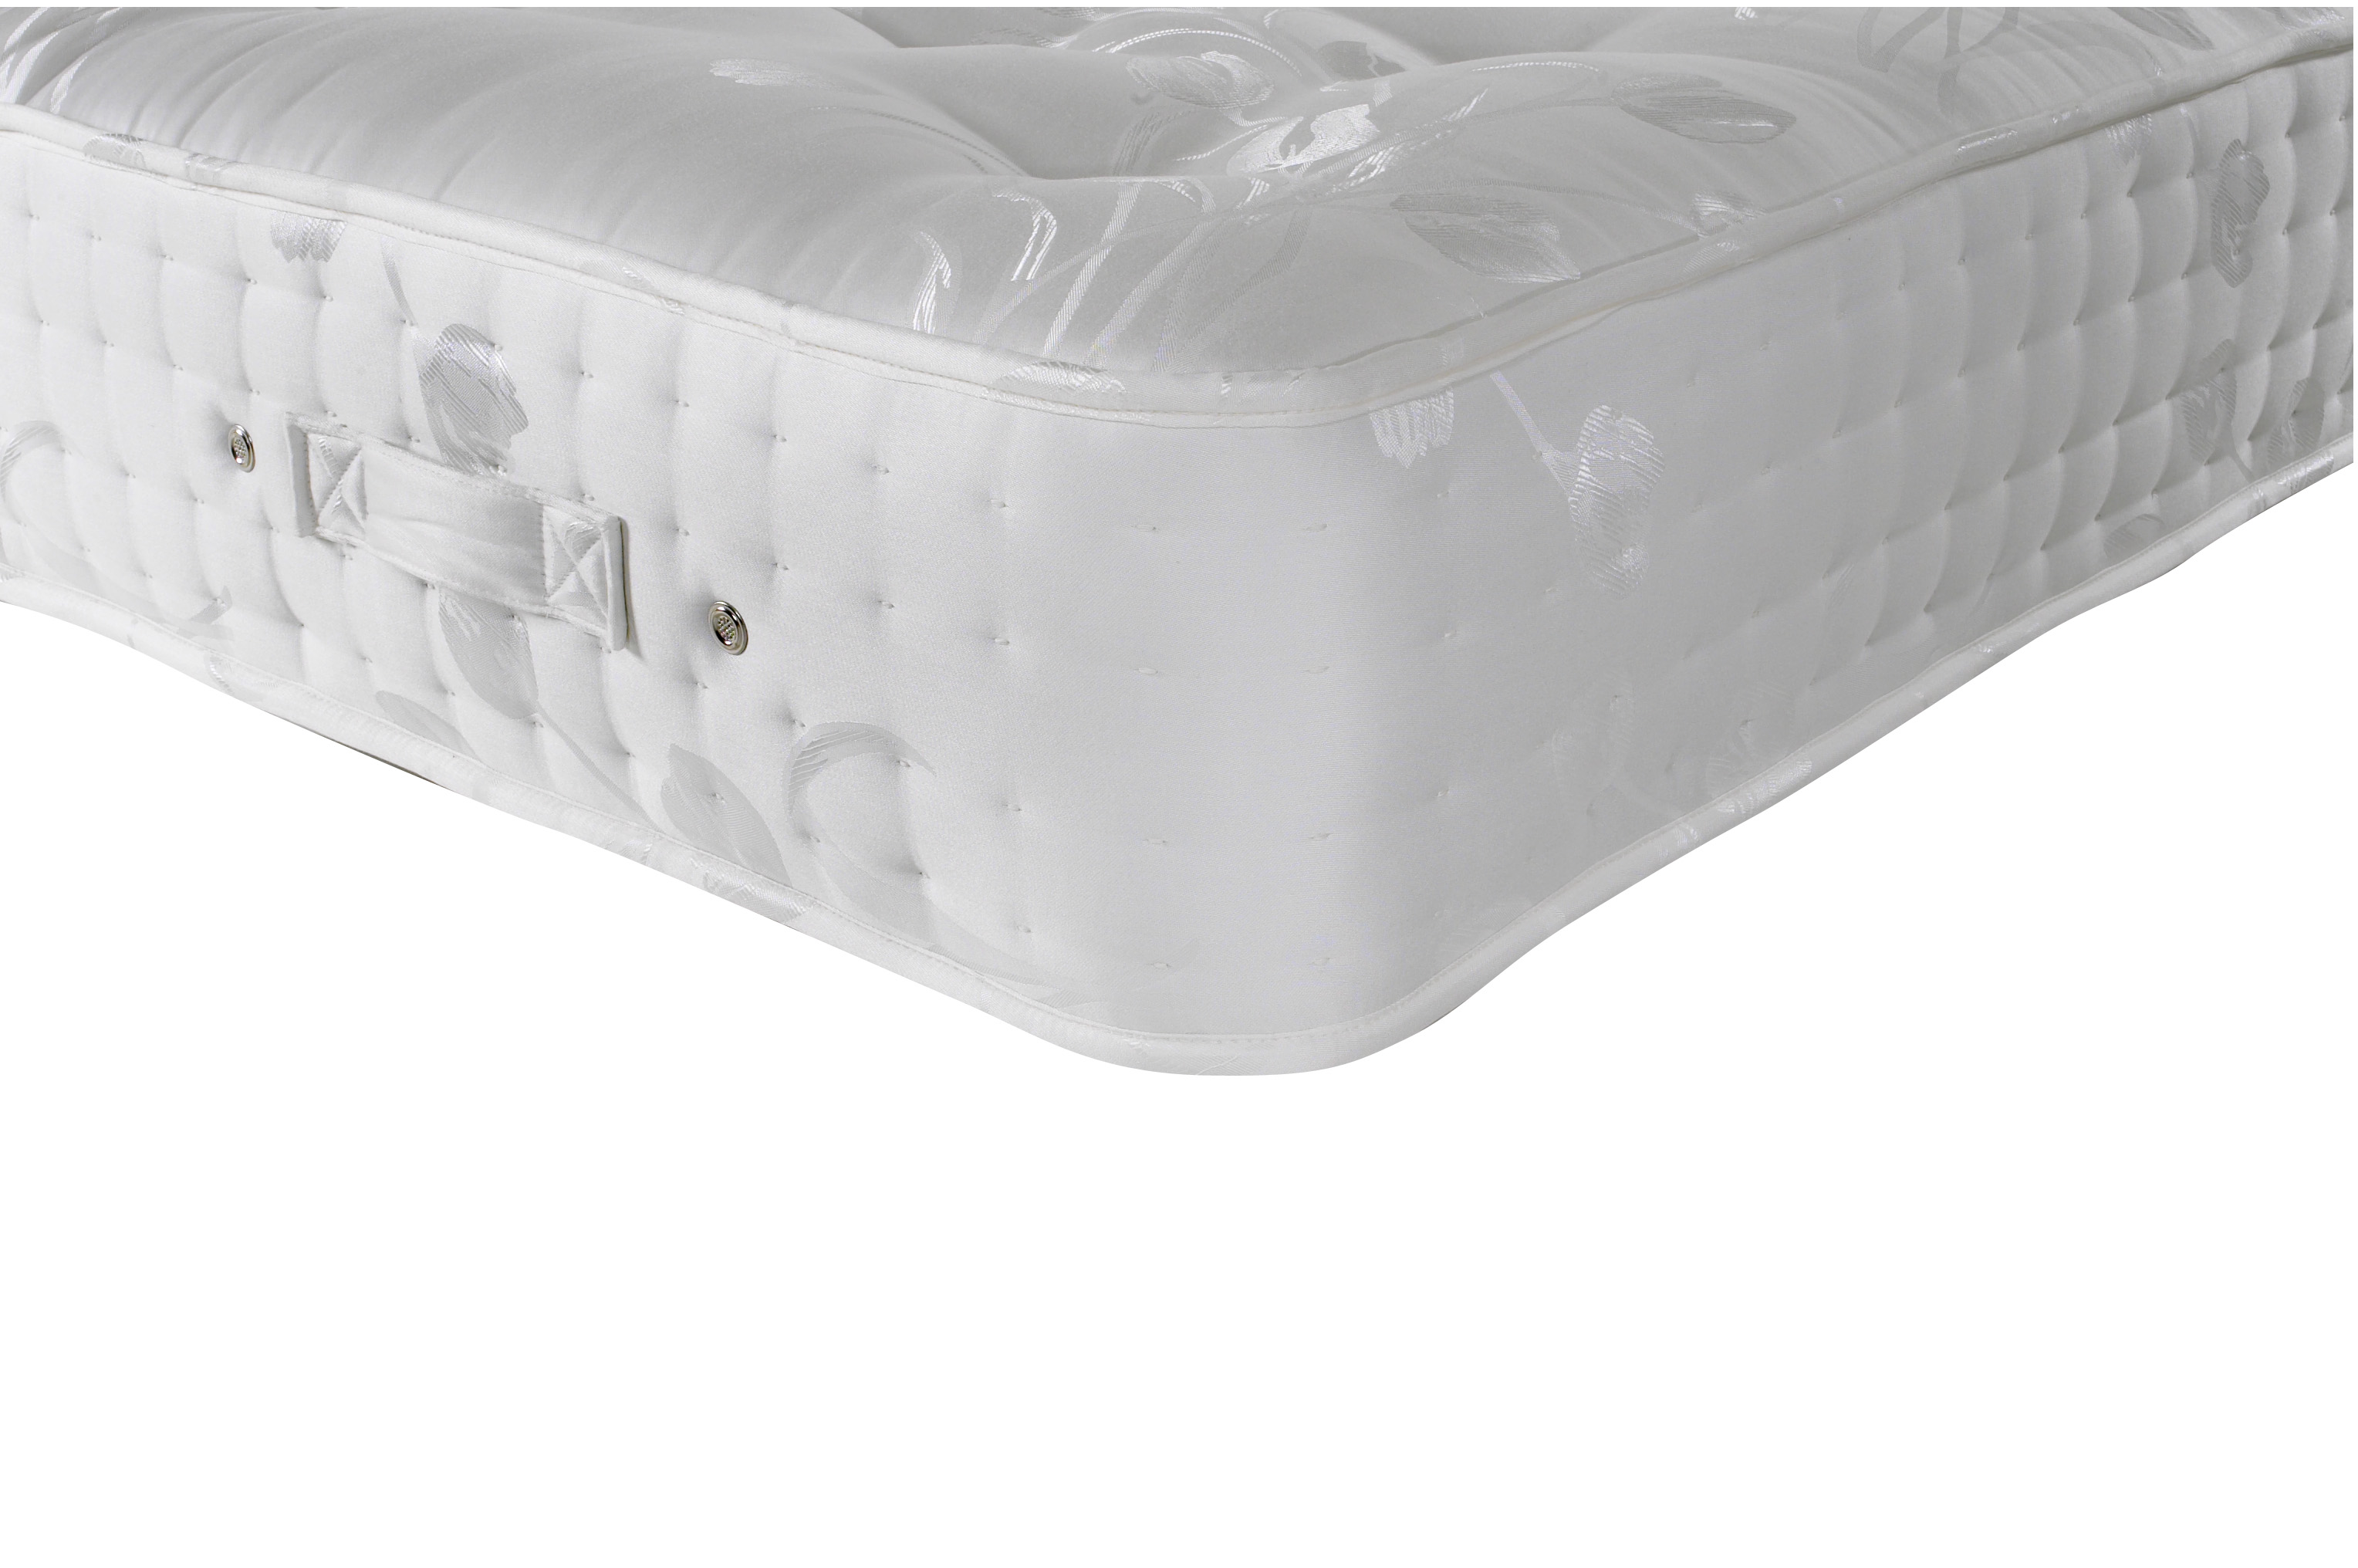 SHIRE BEDS Kensington  2ft6 Small Single 2000 Pocket Sprung Mattress £339